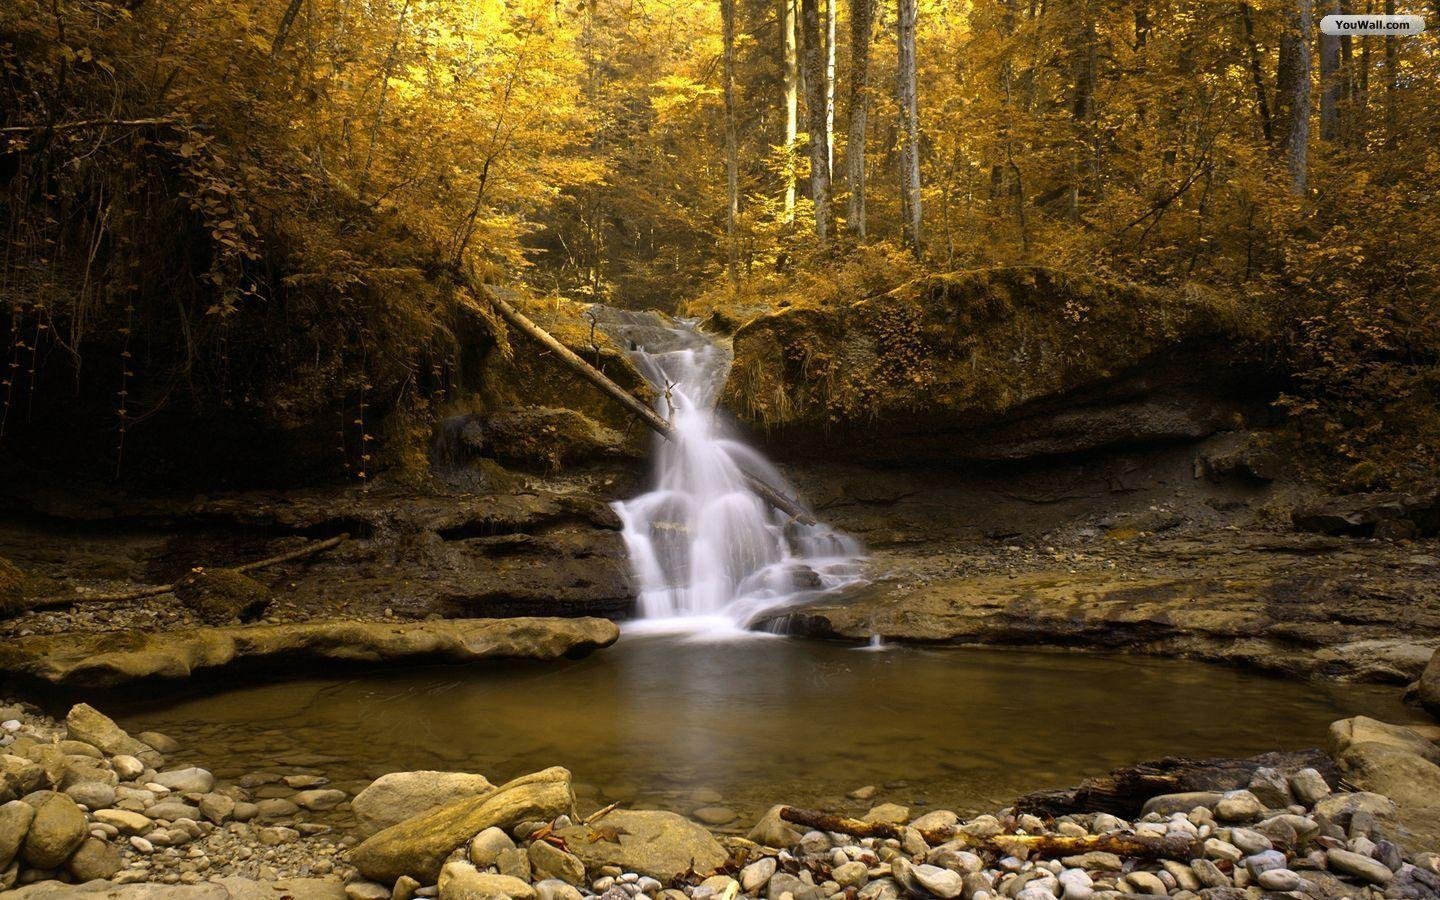 Forest waterfall wallpapers wallpaper cave for Paesaggi autunnali per desktop